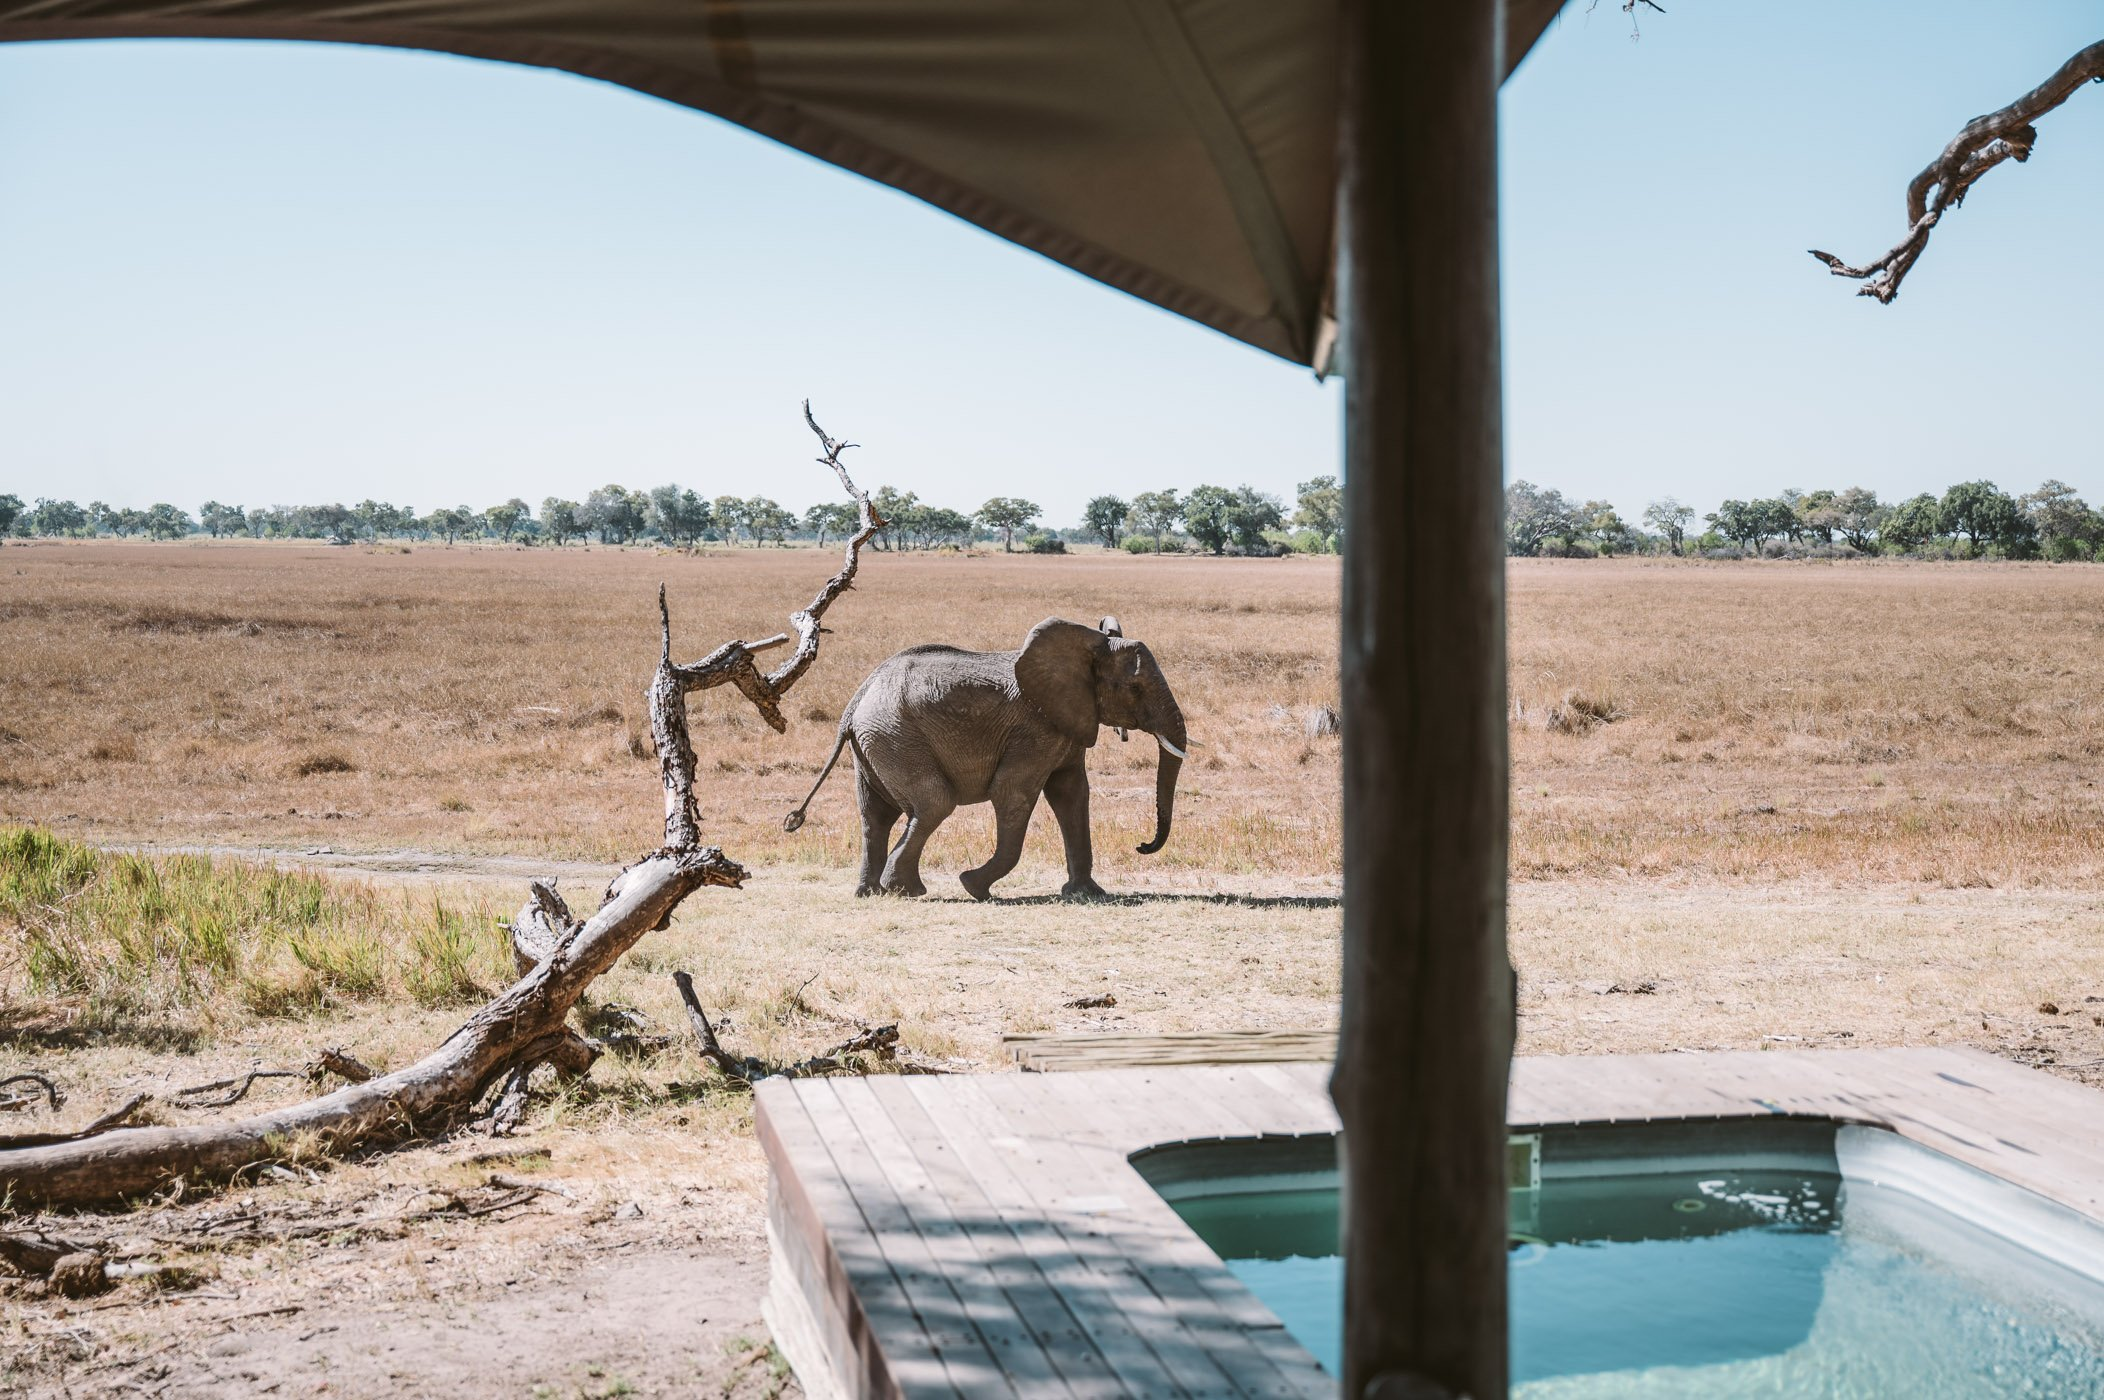 andBeyond Xaranna Okavango Delta Camp elephant by the pool